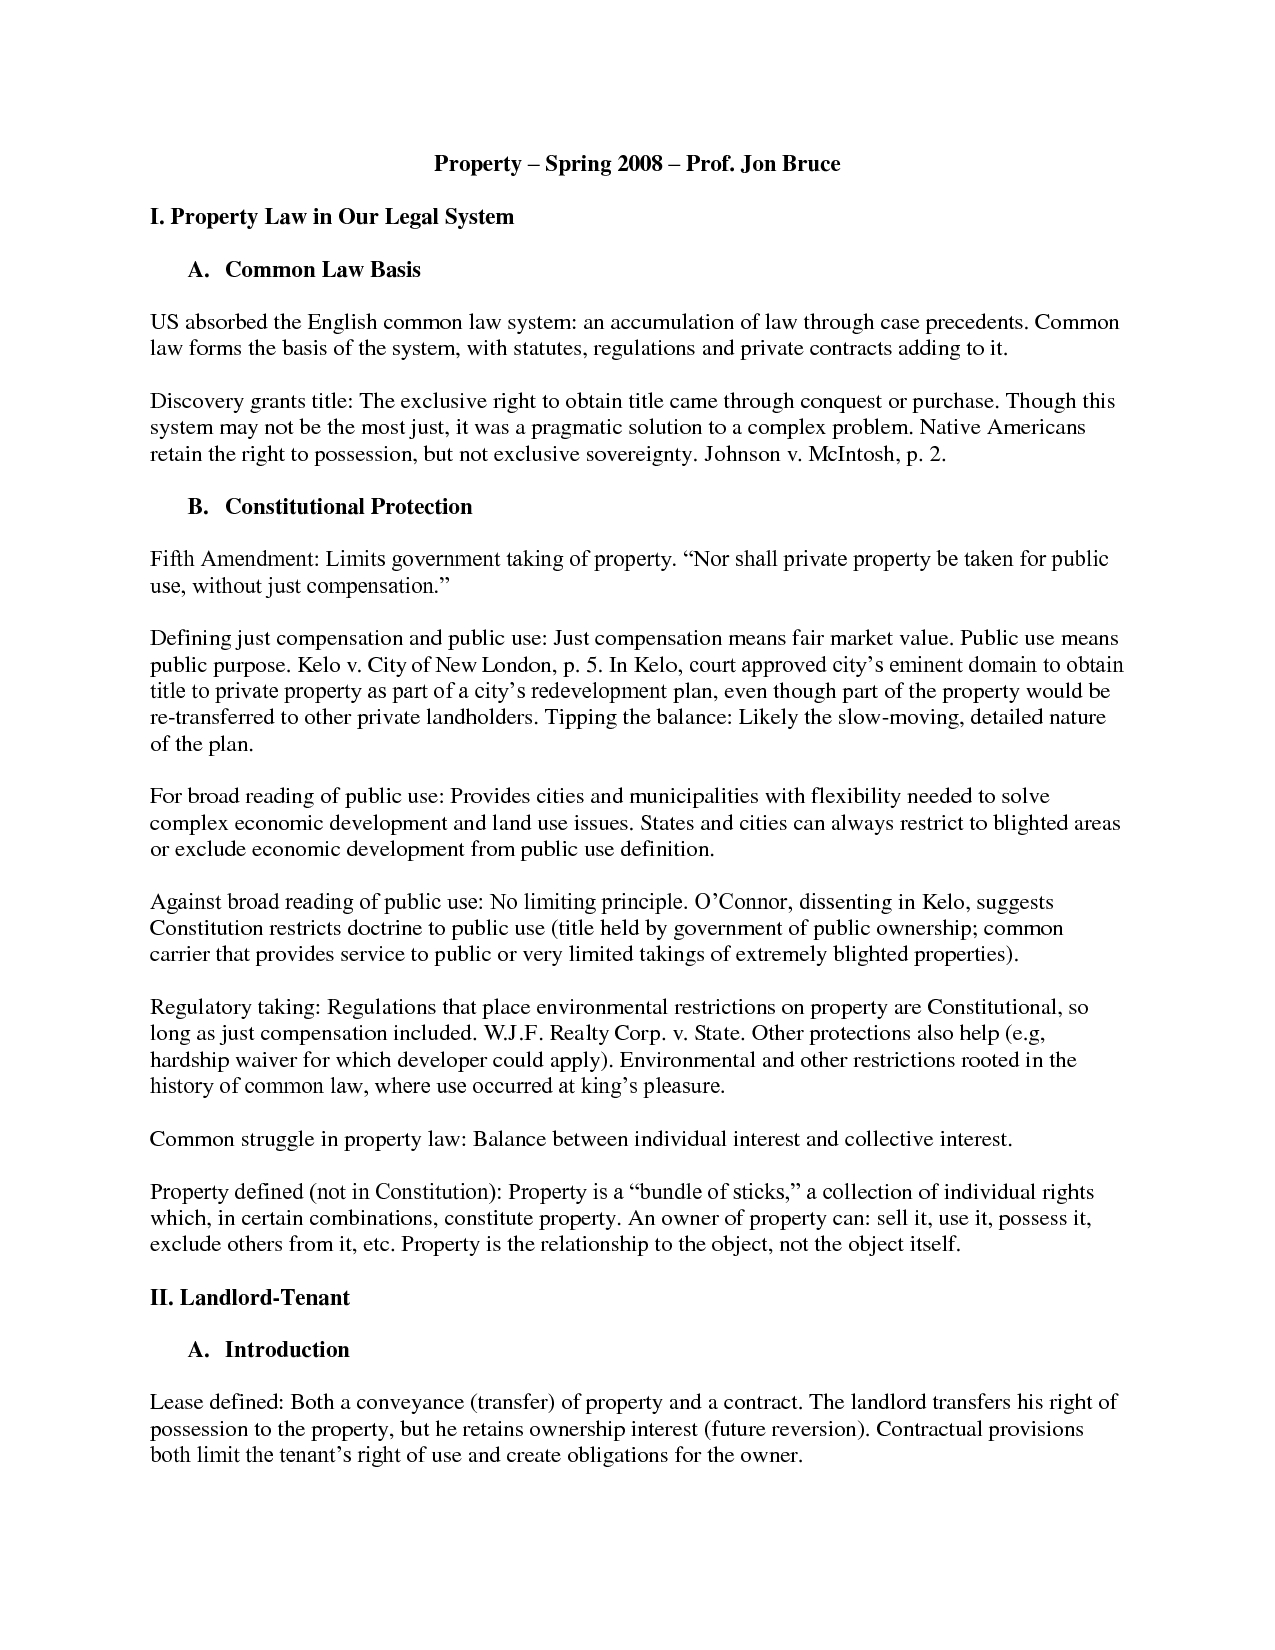 Notice to Vacate Letter to Tenant Template - Sample Intent to Vacate Letter Picture Idease Tenant Rental Property